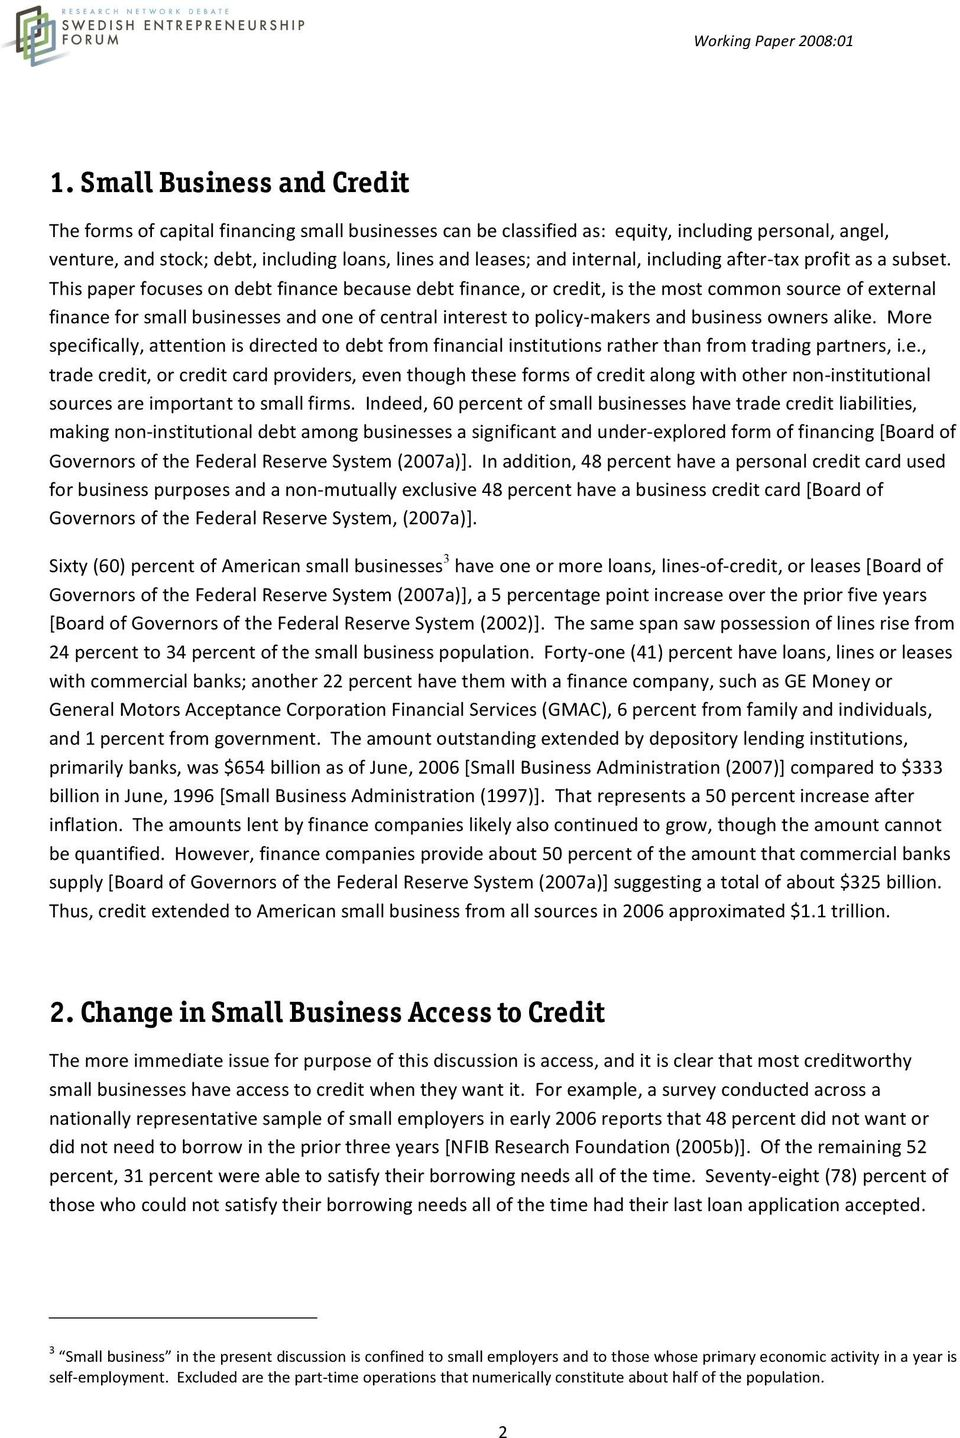 This paper focuses on debt finance because debt finance, or credit, is the most common source of external finance for small businesses and one of central interest to policy- makers and business